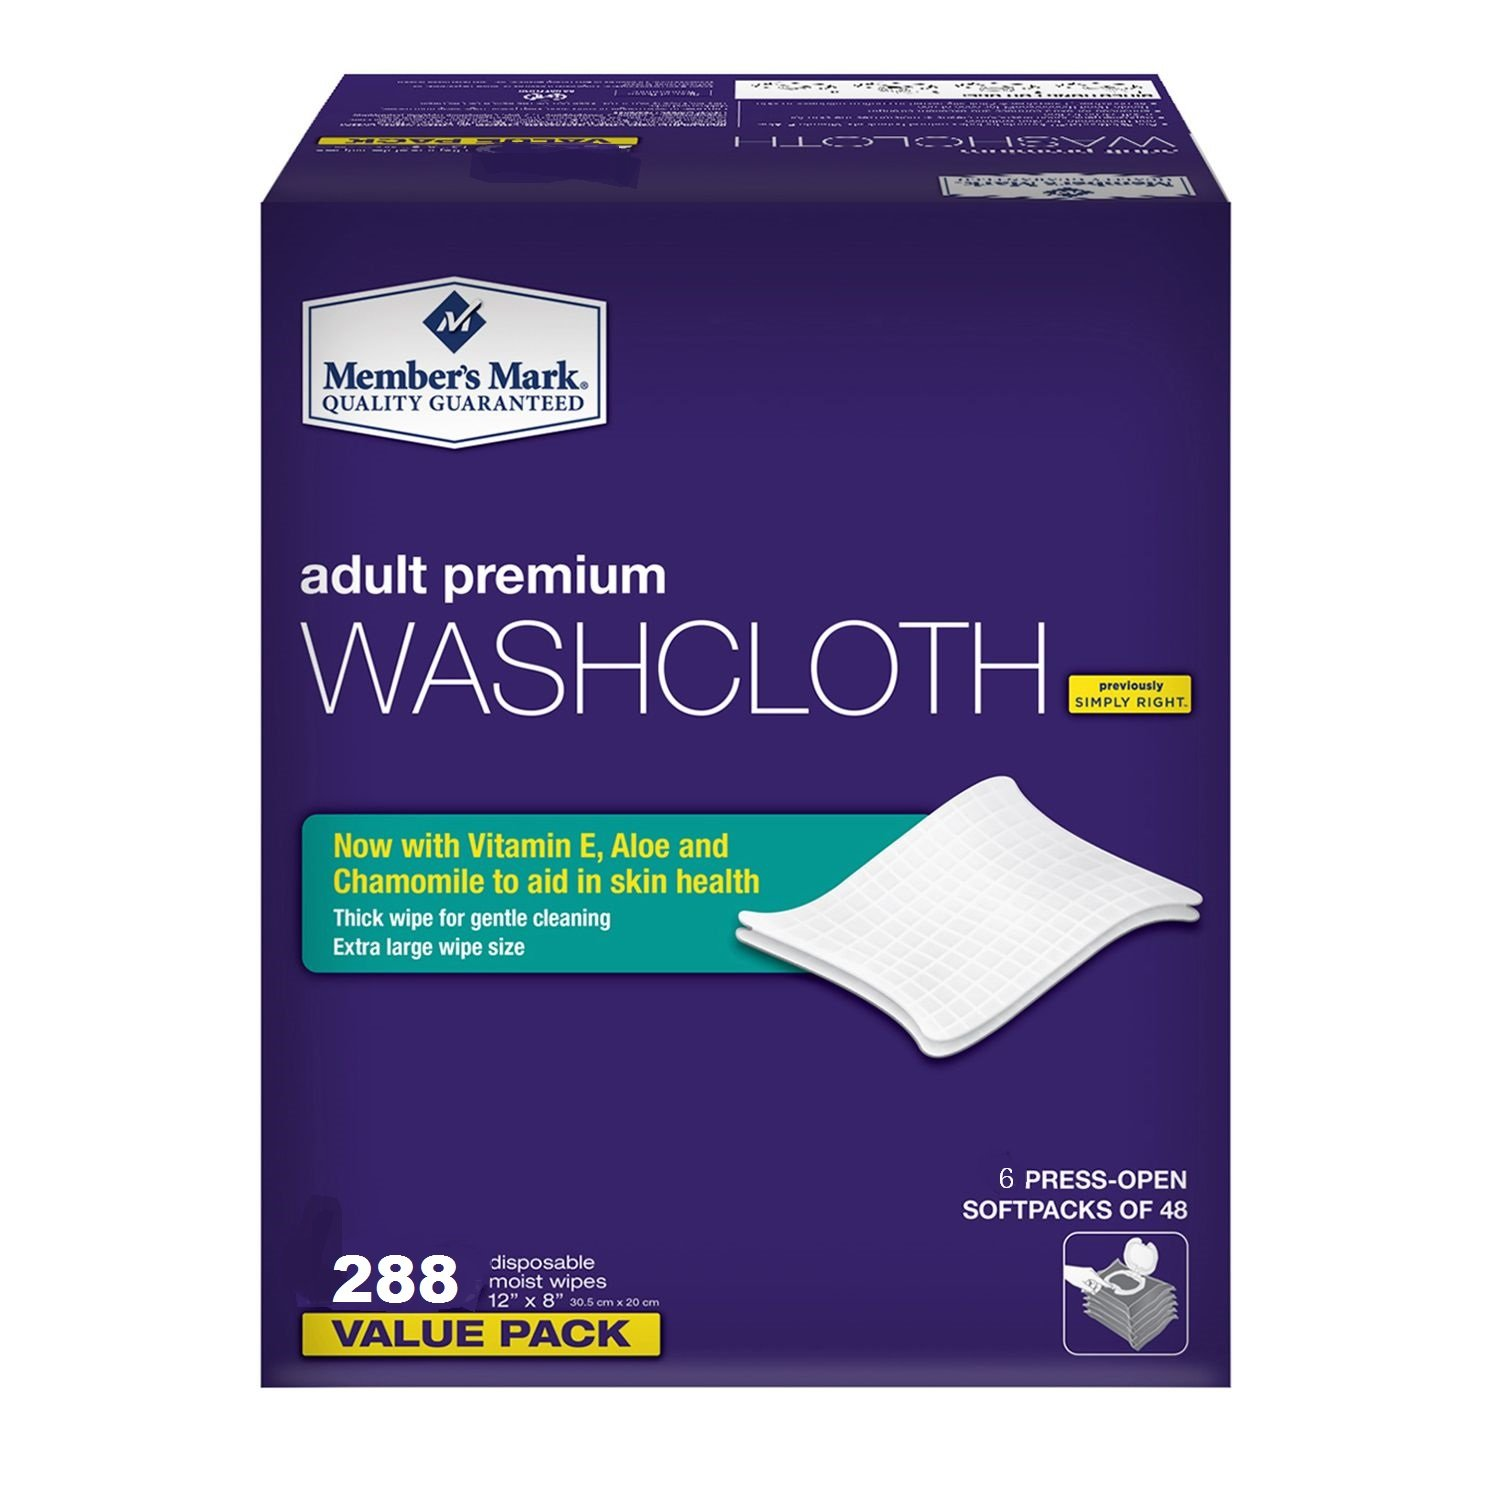 Member's Mark Adult Premium Disposable Washcloth Value Pack 288 count Carton…